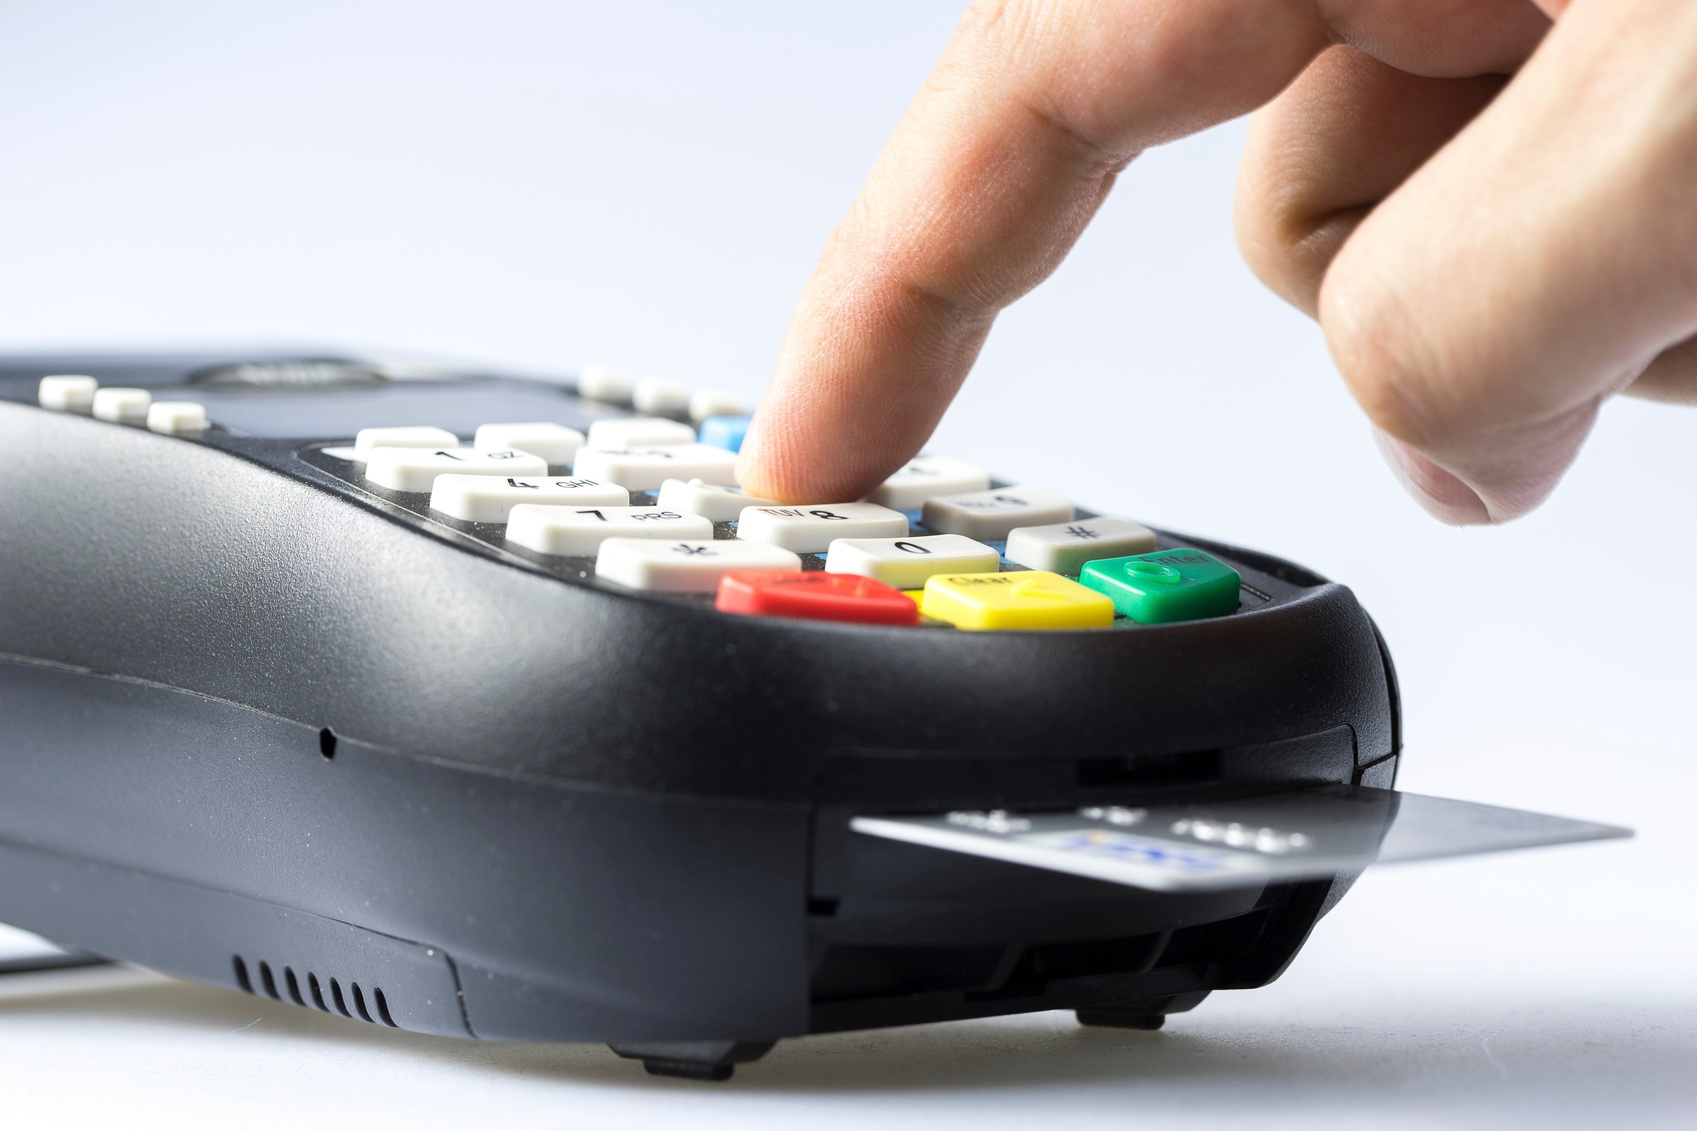 A-credit-card-machine-asking-for-a-password-for-payment-000059390580_Medium-1.jpg